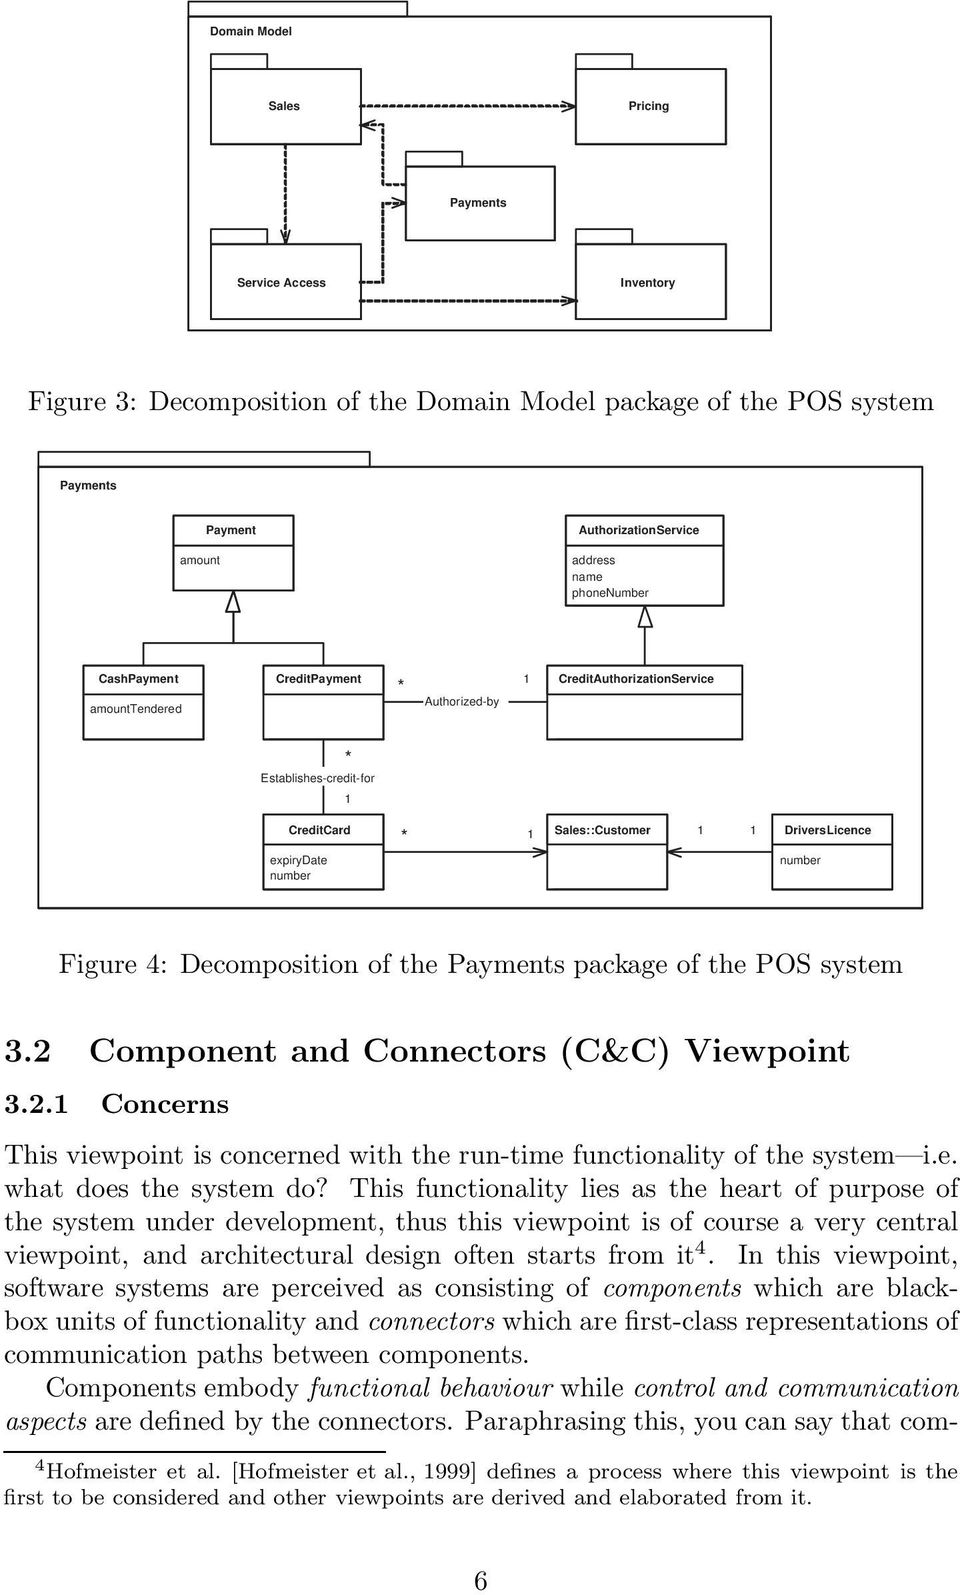 Figure 4: Decomposition of the Payments package of the POS system 3.2 Component and Connectors (C&C) Viewpoint 3.2.1 Concerns This viewpoint is concerned with the run-time functionality of the system i.